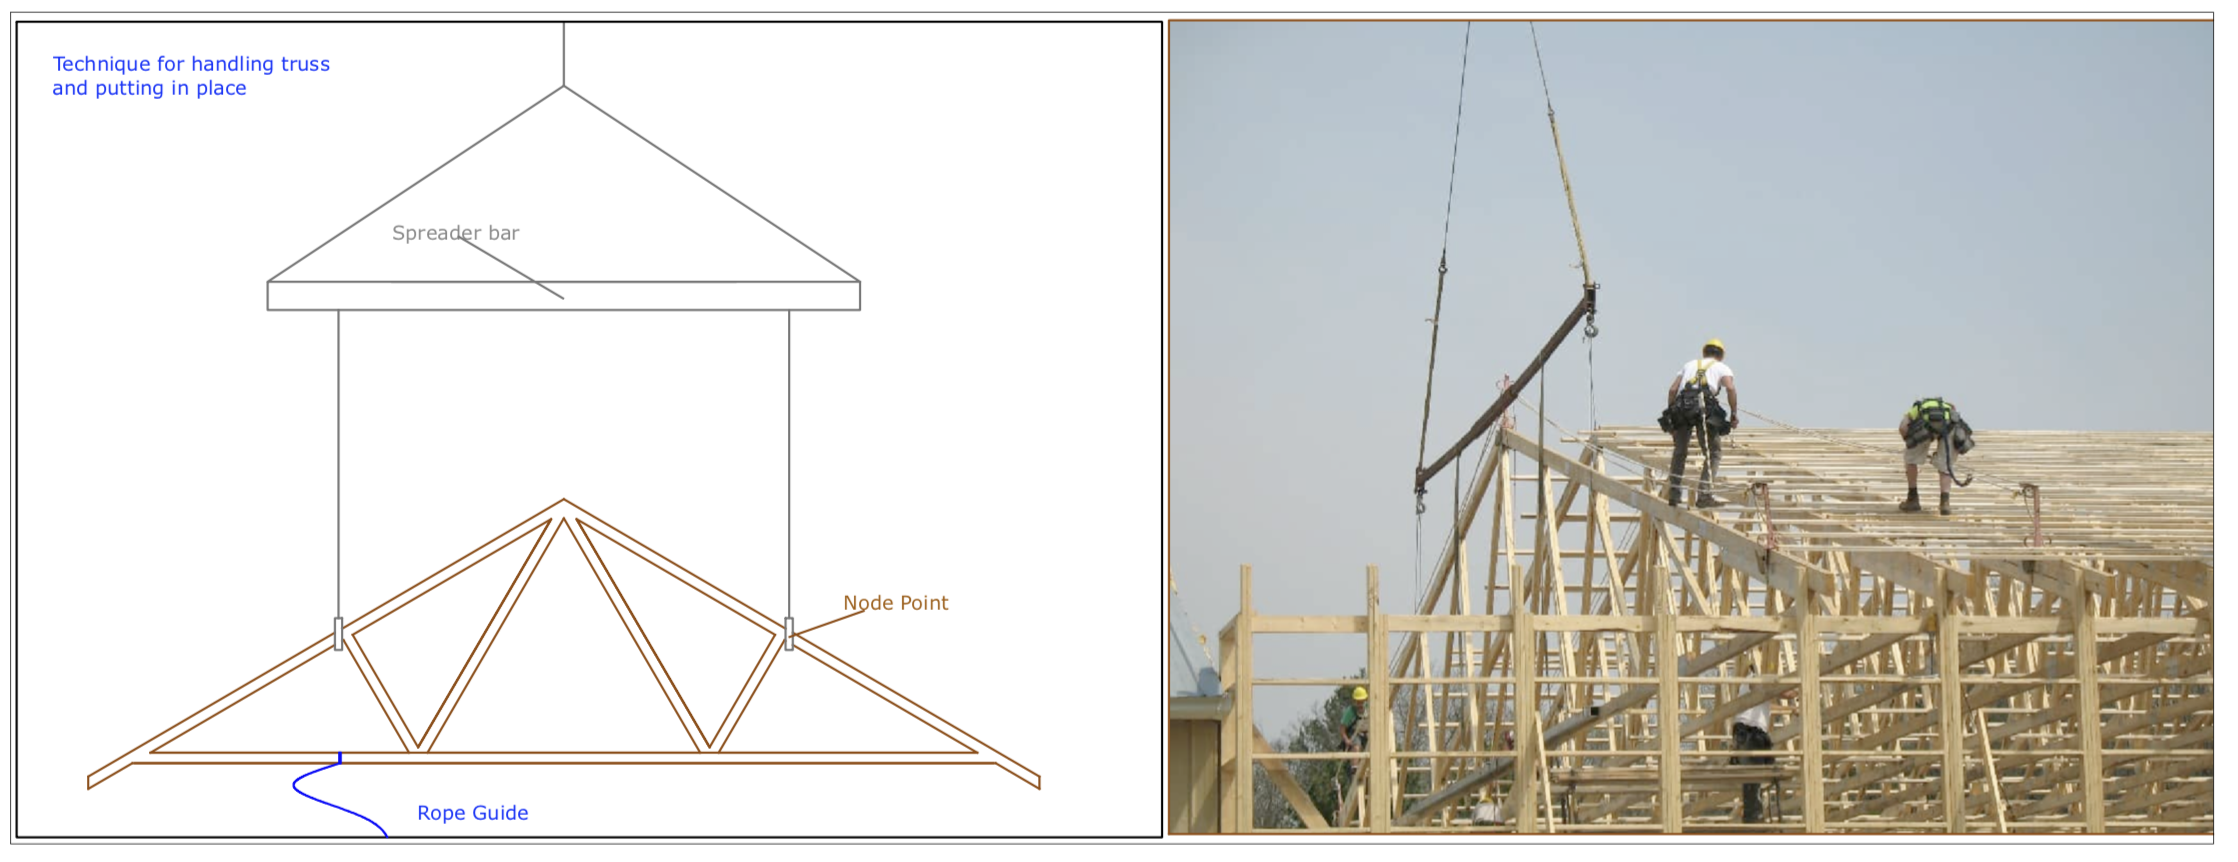 Diagram D32 - Handling trusses into place